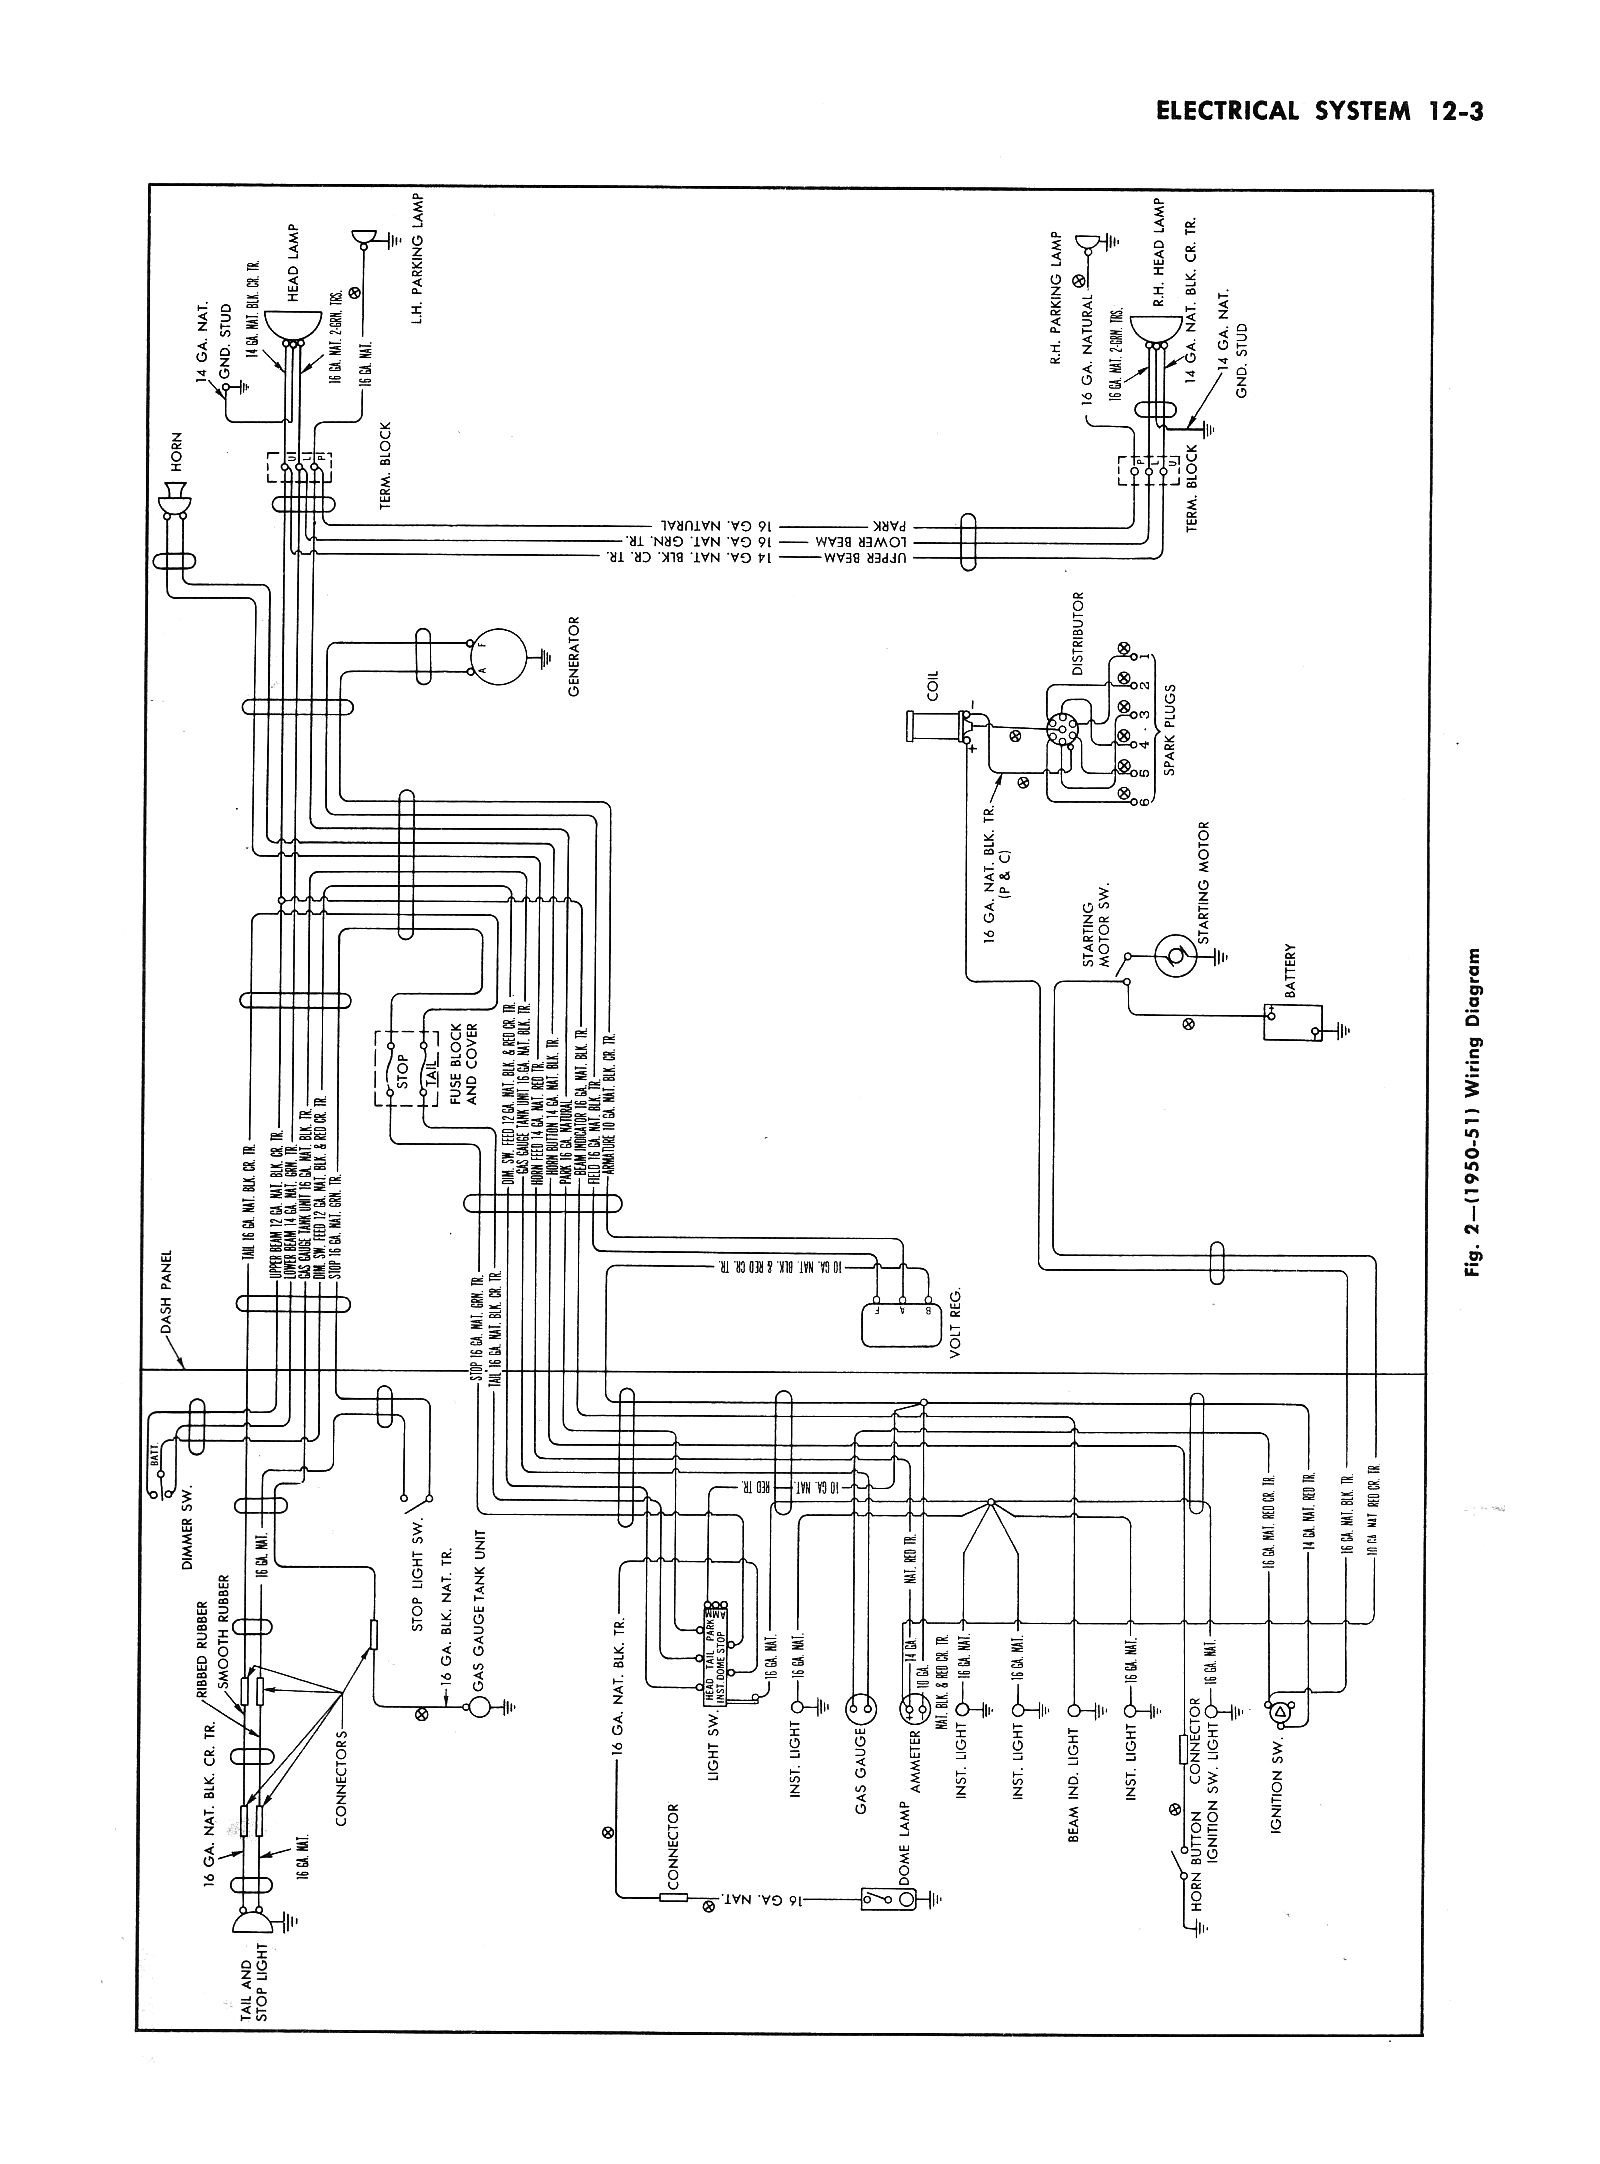 50ctsm1203 chevy wiring diagrams 1950 chevy truck wiring diagram at alyssarenee.co